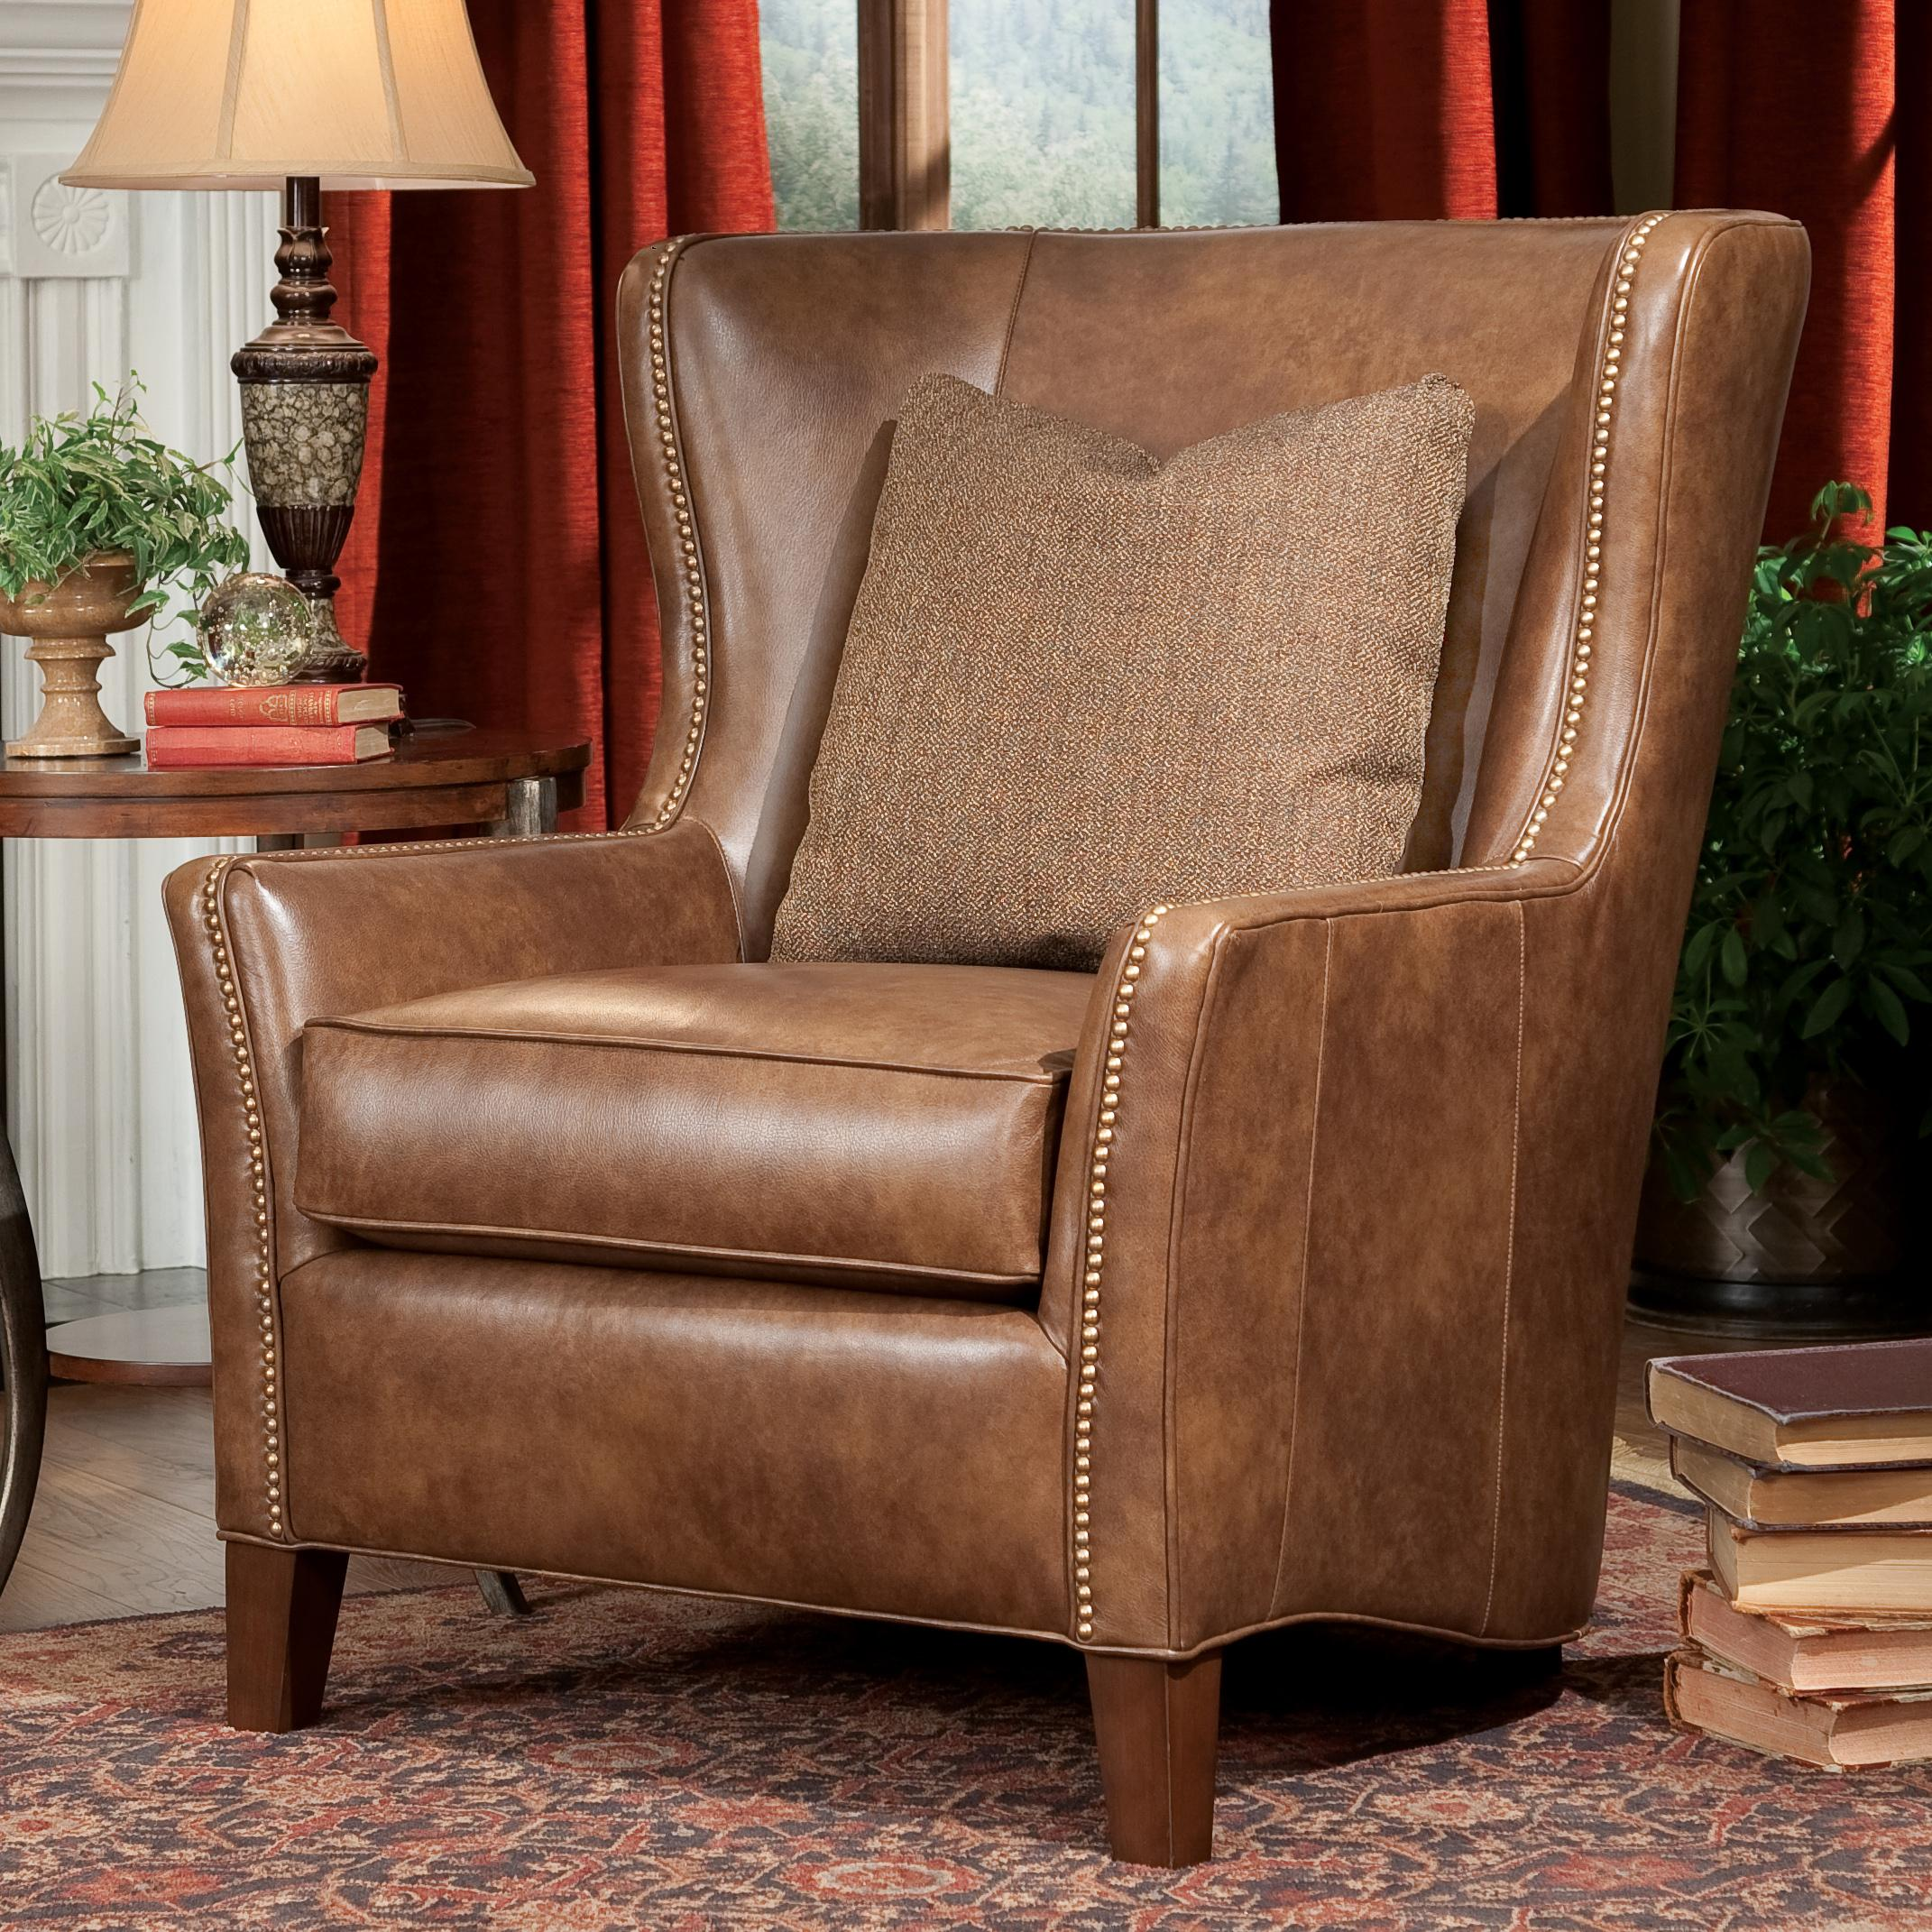 wingback chair covers amazon big joe roma multiple colors contemporary with track arms by smith brothers | wolf and gardiner furniture